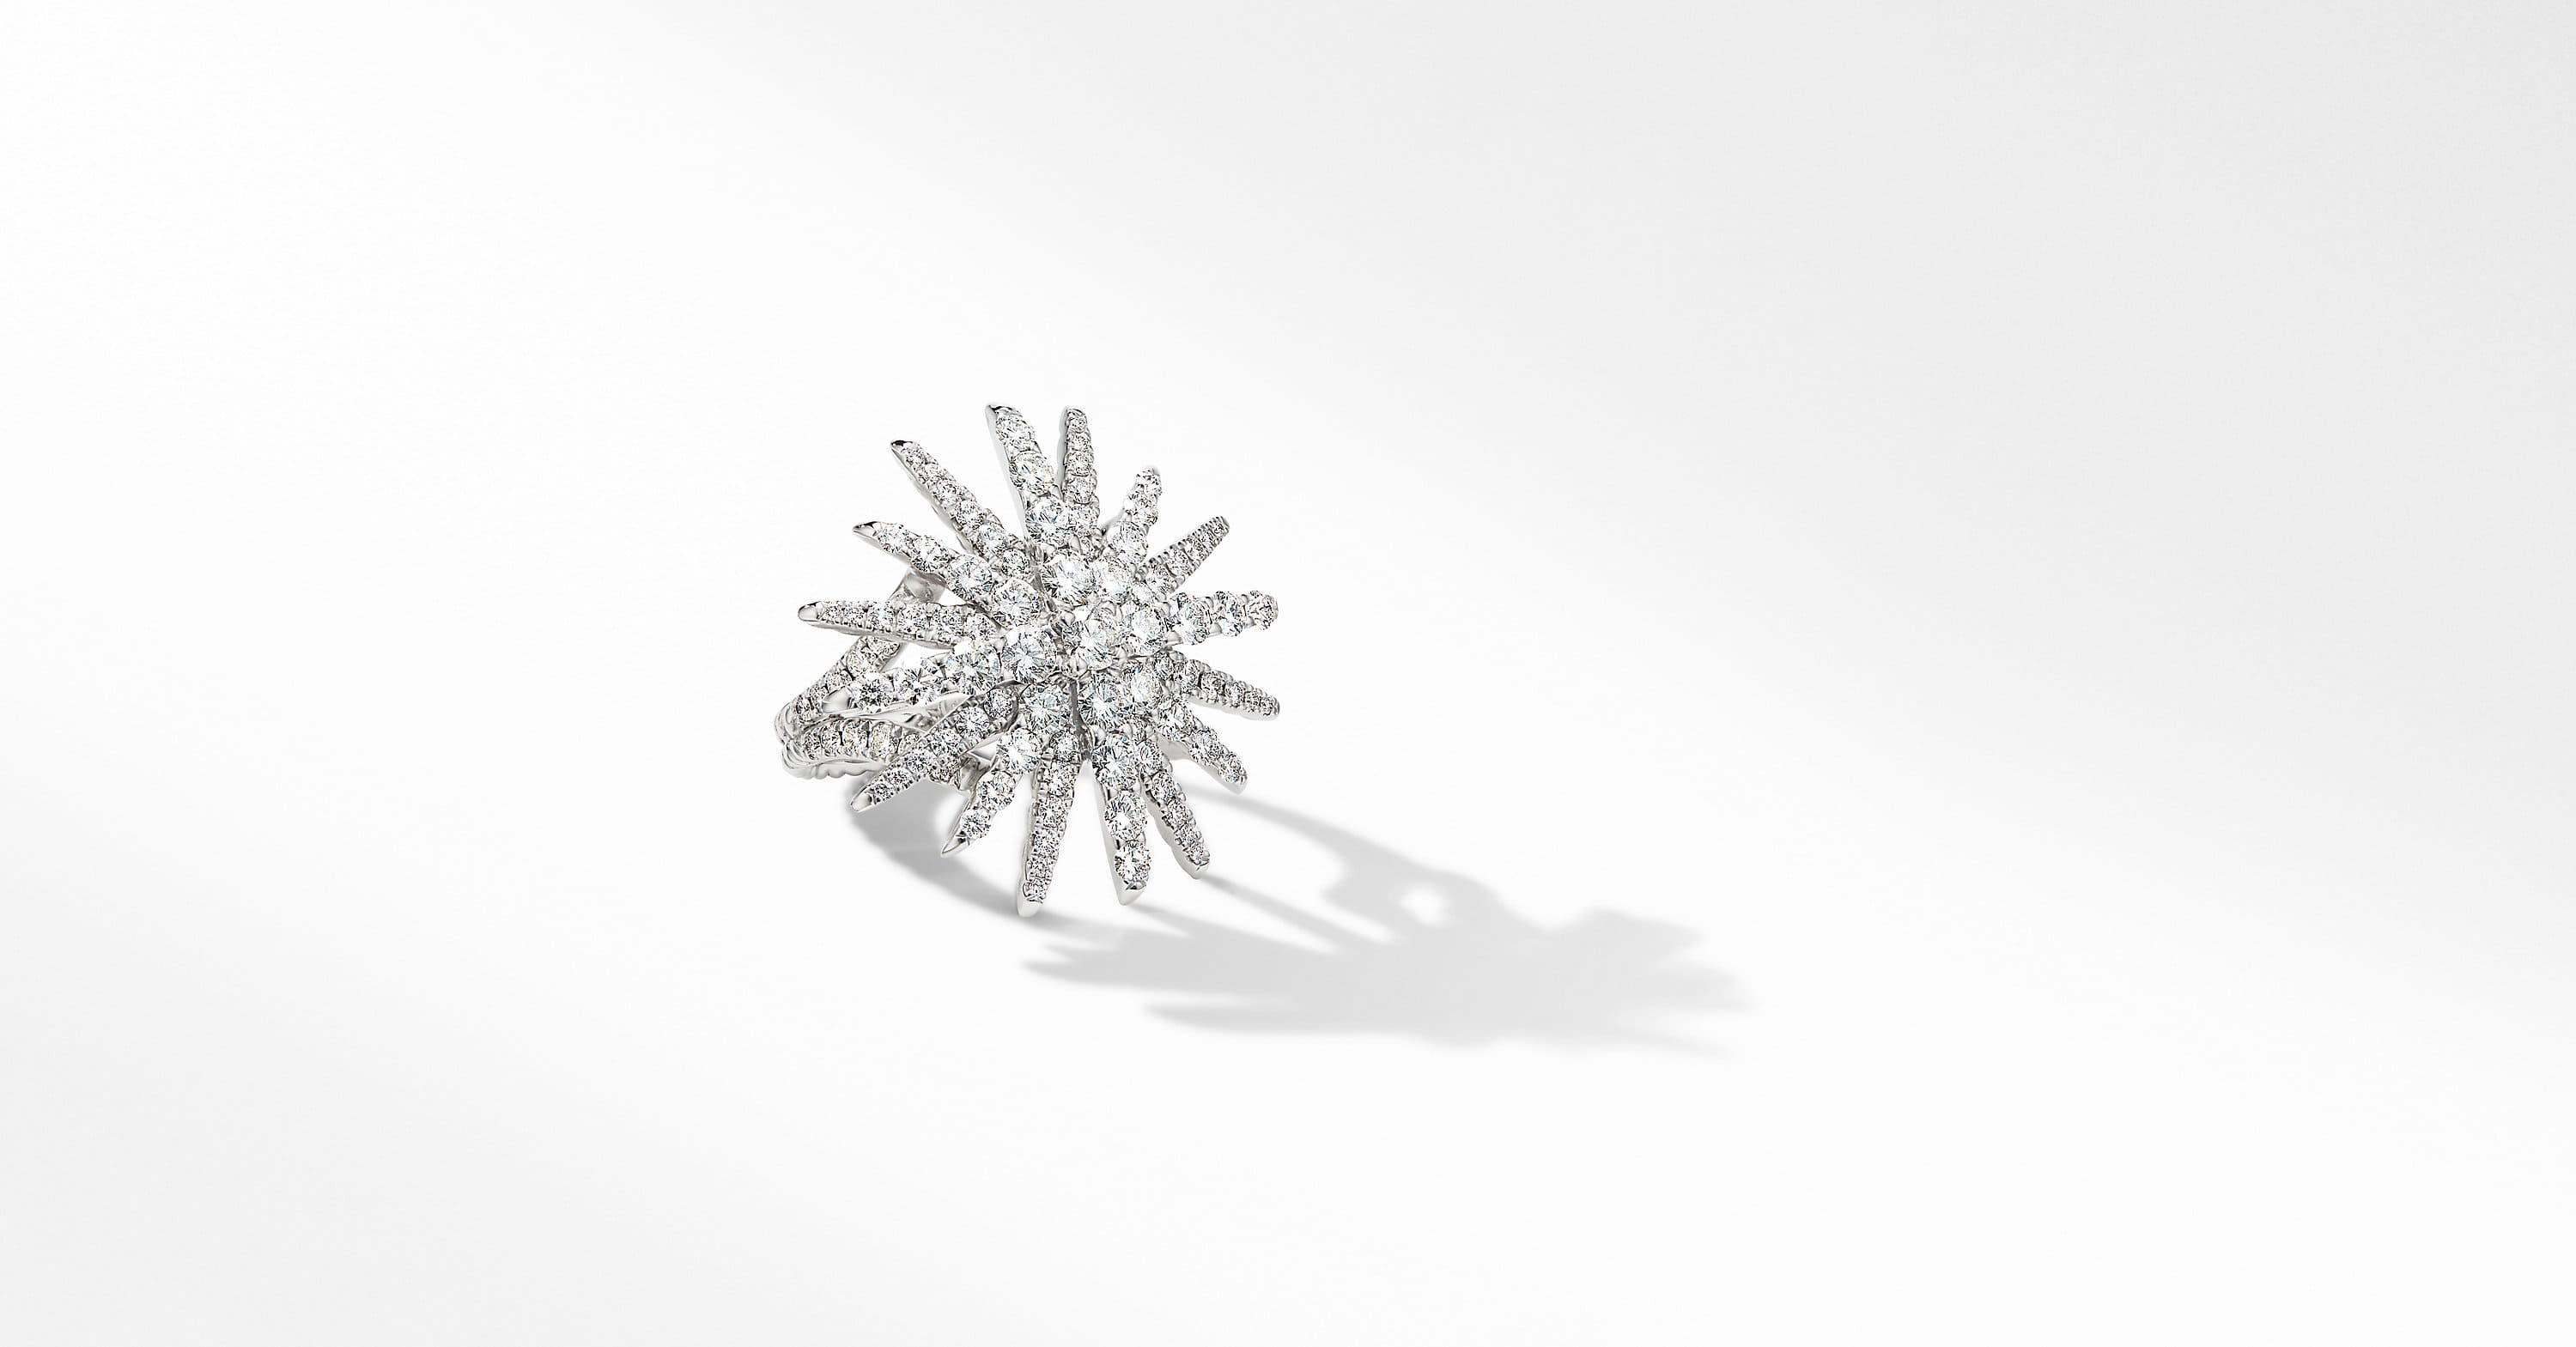 Starburst Statement Ring in 18K White Gold with Pavé